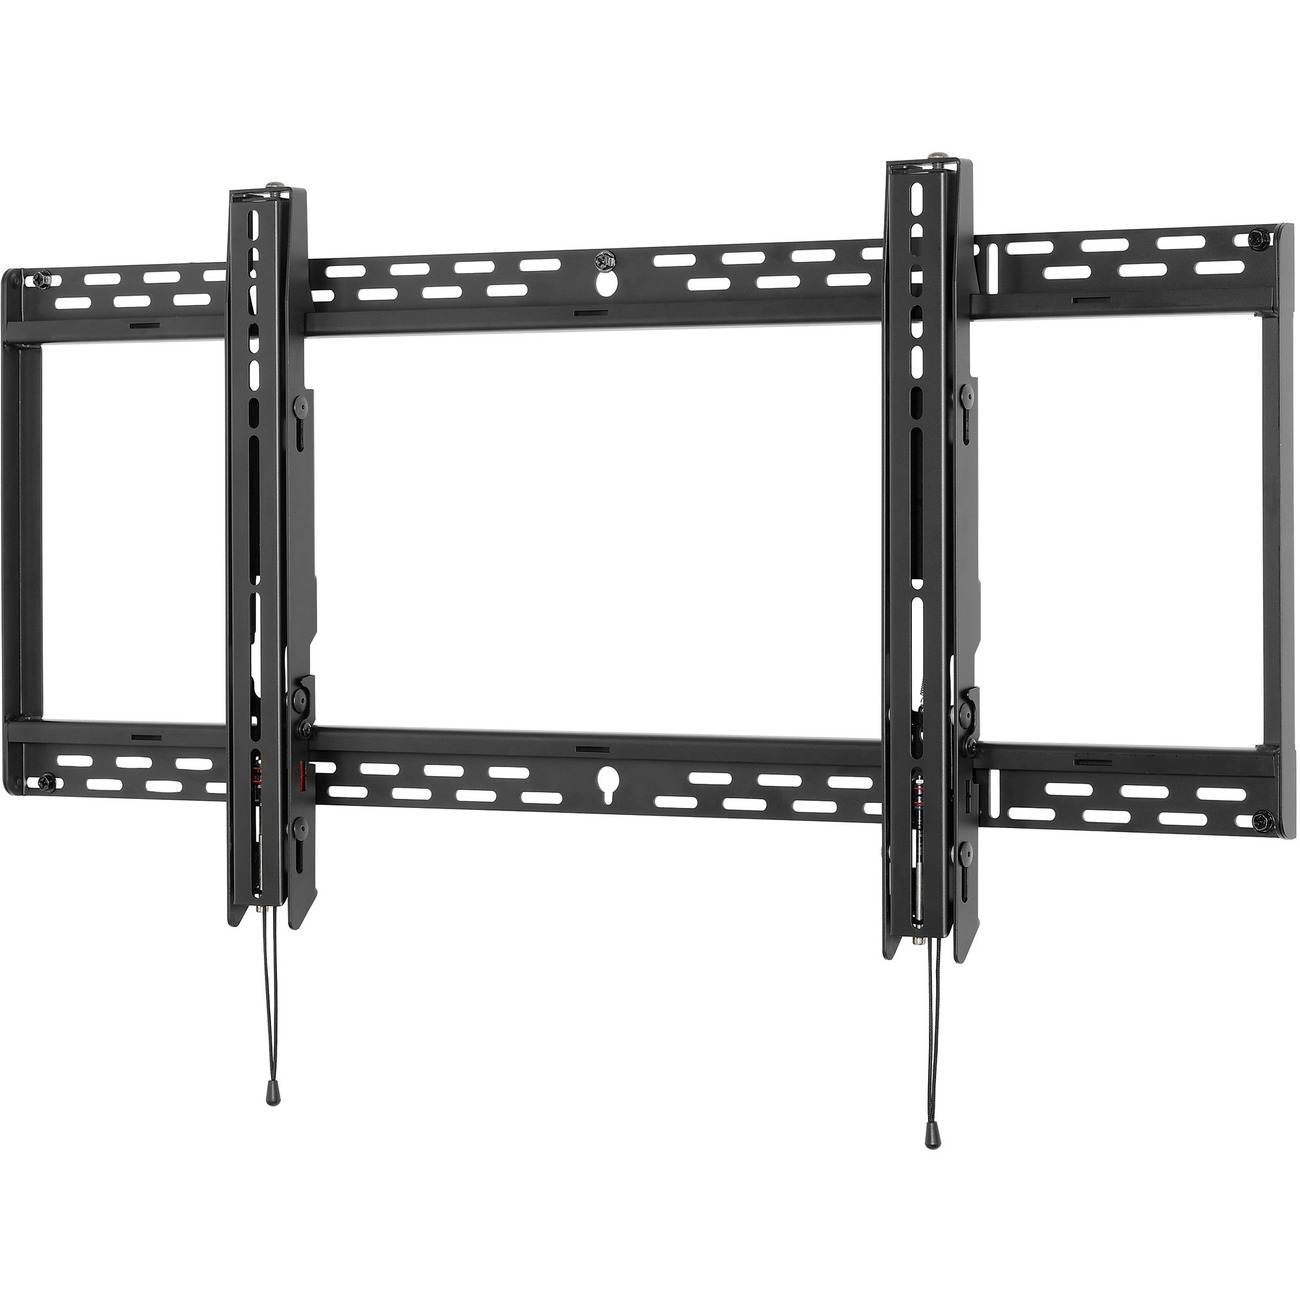 Peerless SmartMount Universal Flat Wall Mount For 46 To 90 Displays Black SF670